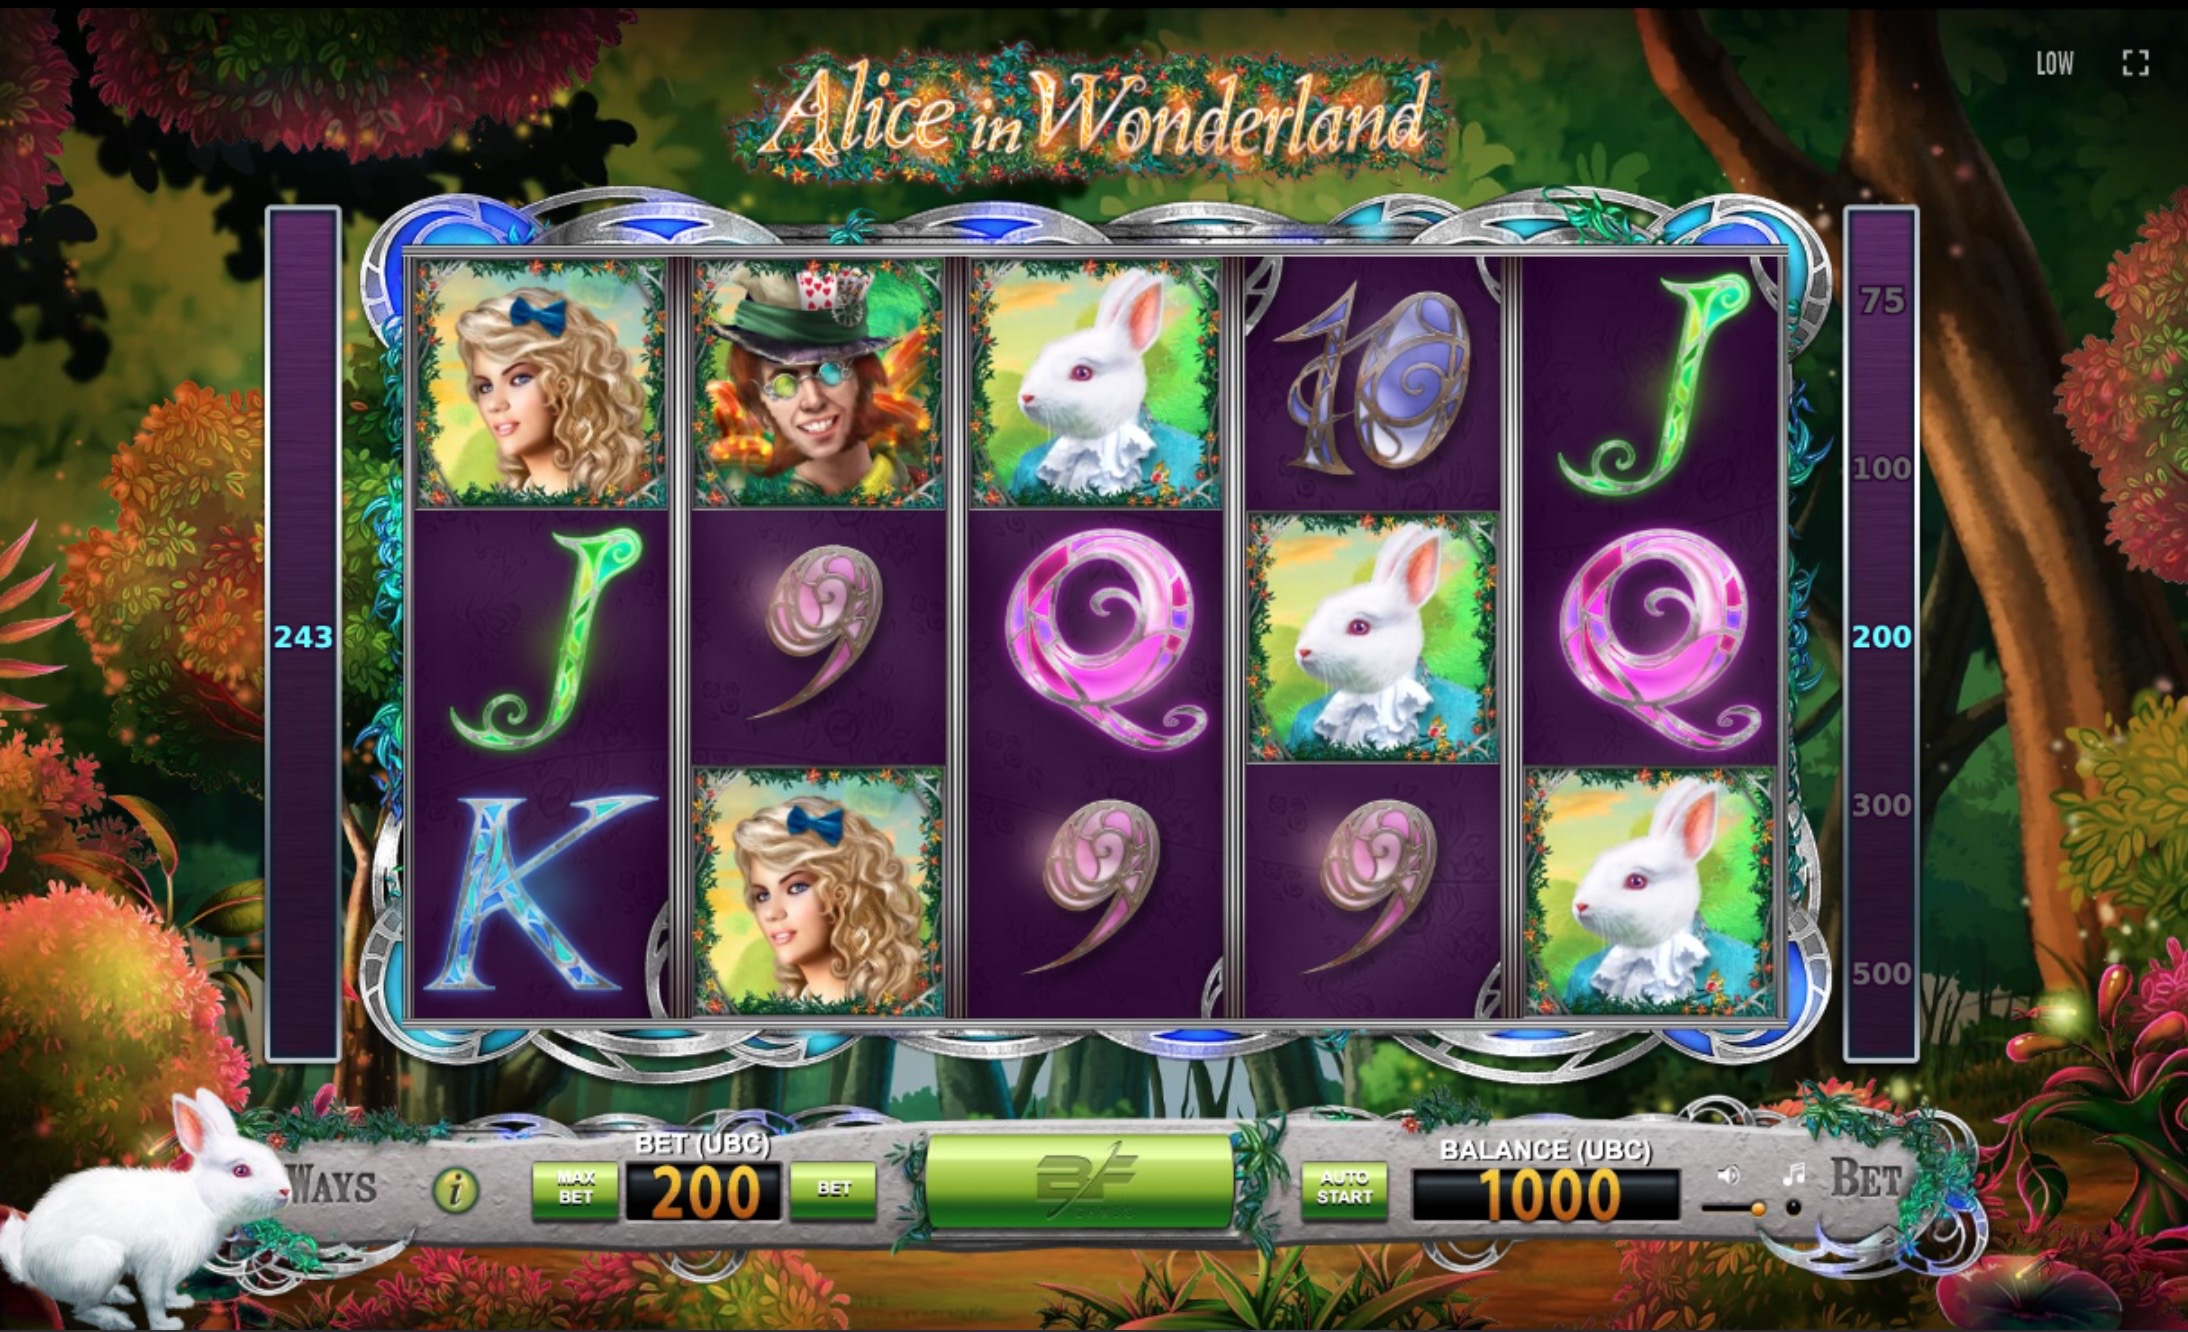 How to play Alice in Wonderland